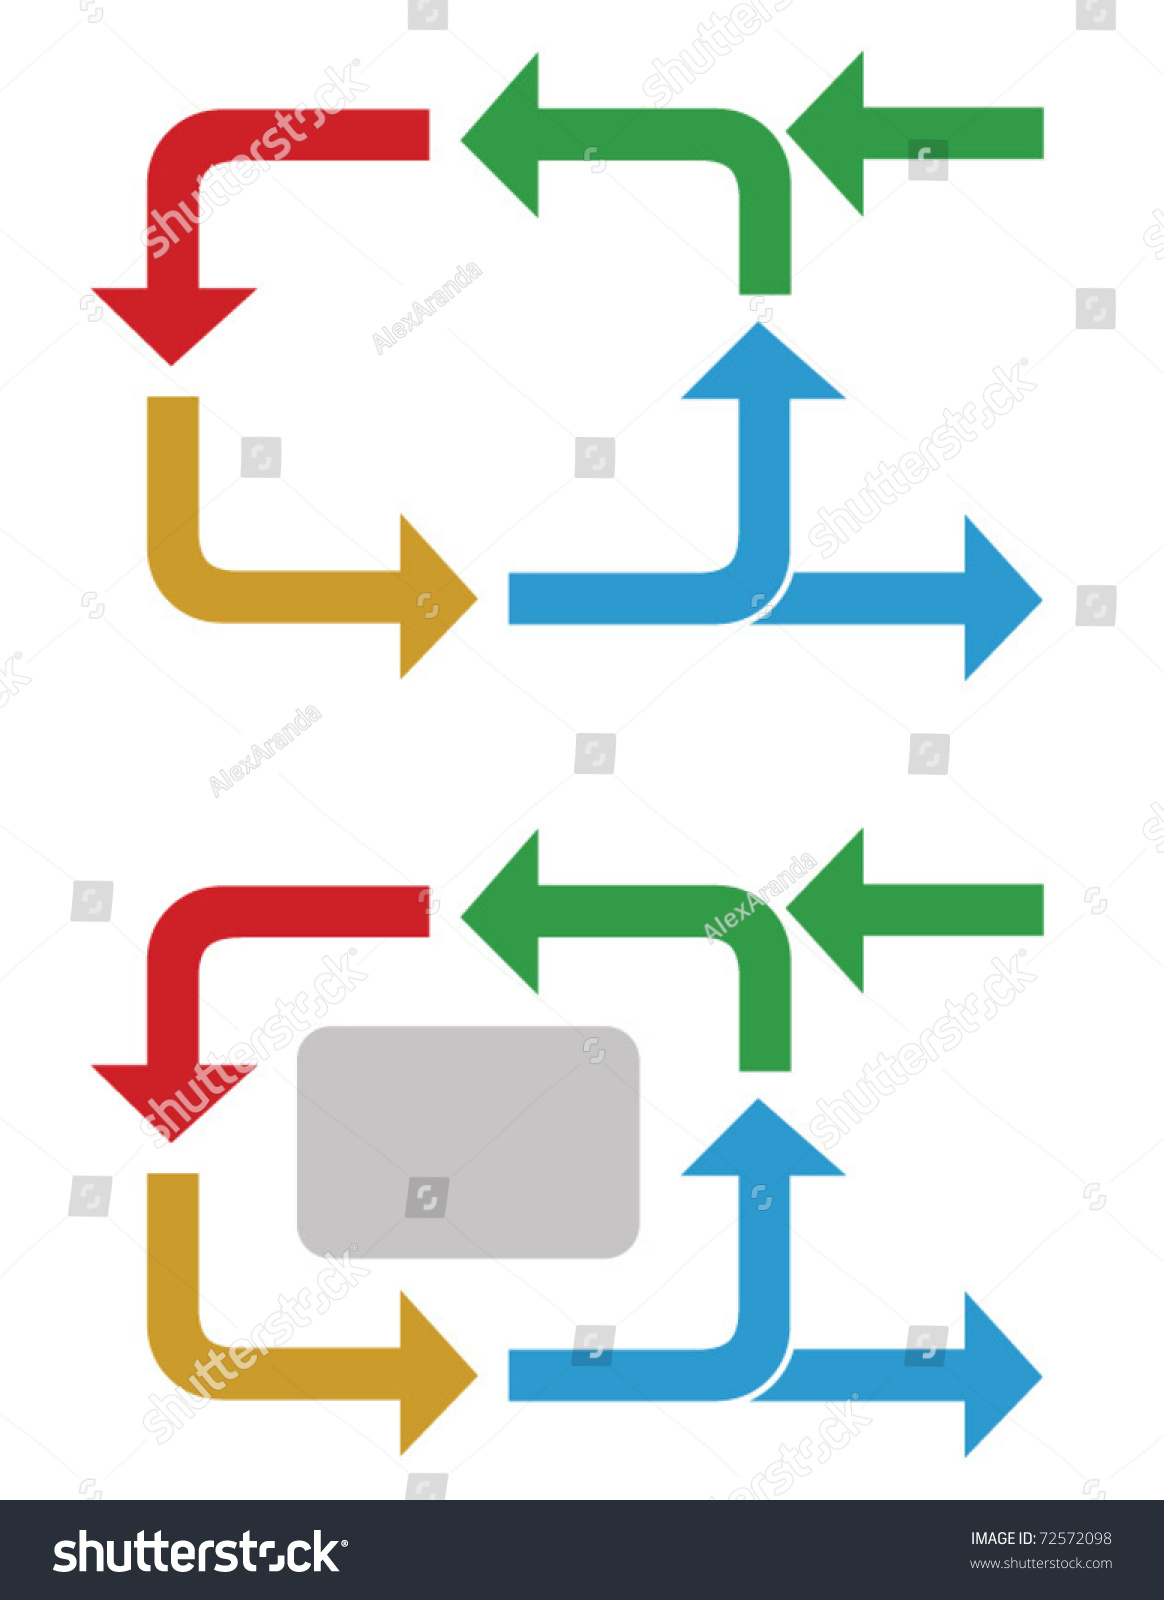 Business Process Flow Diagram Stock Vector Royalty Free 72572098 Images